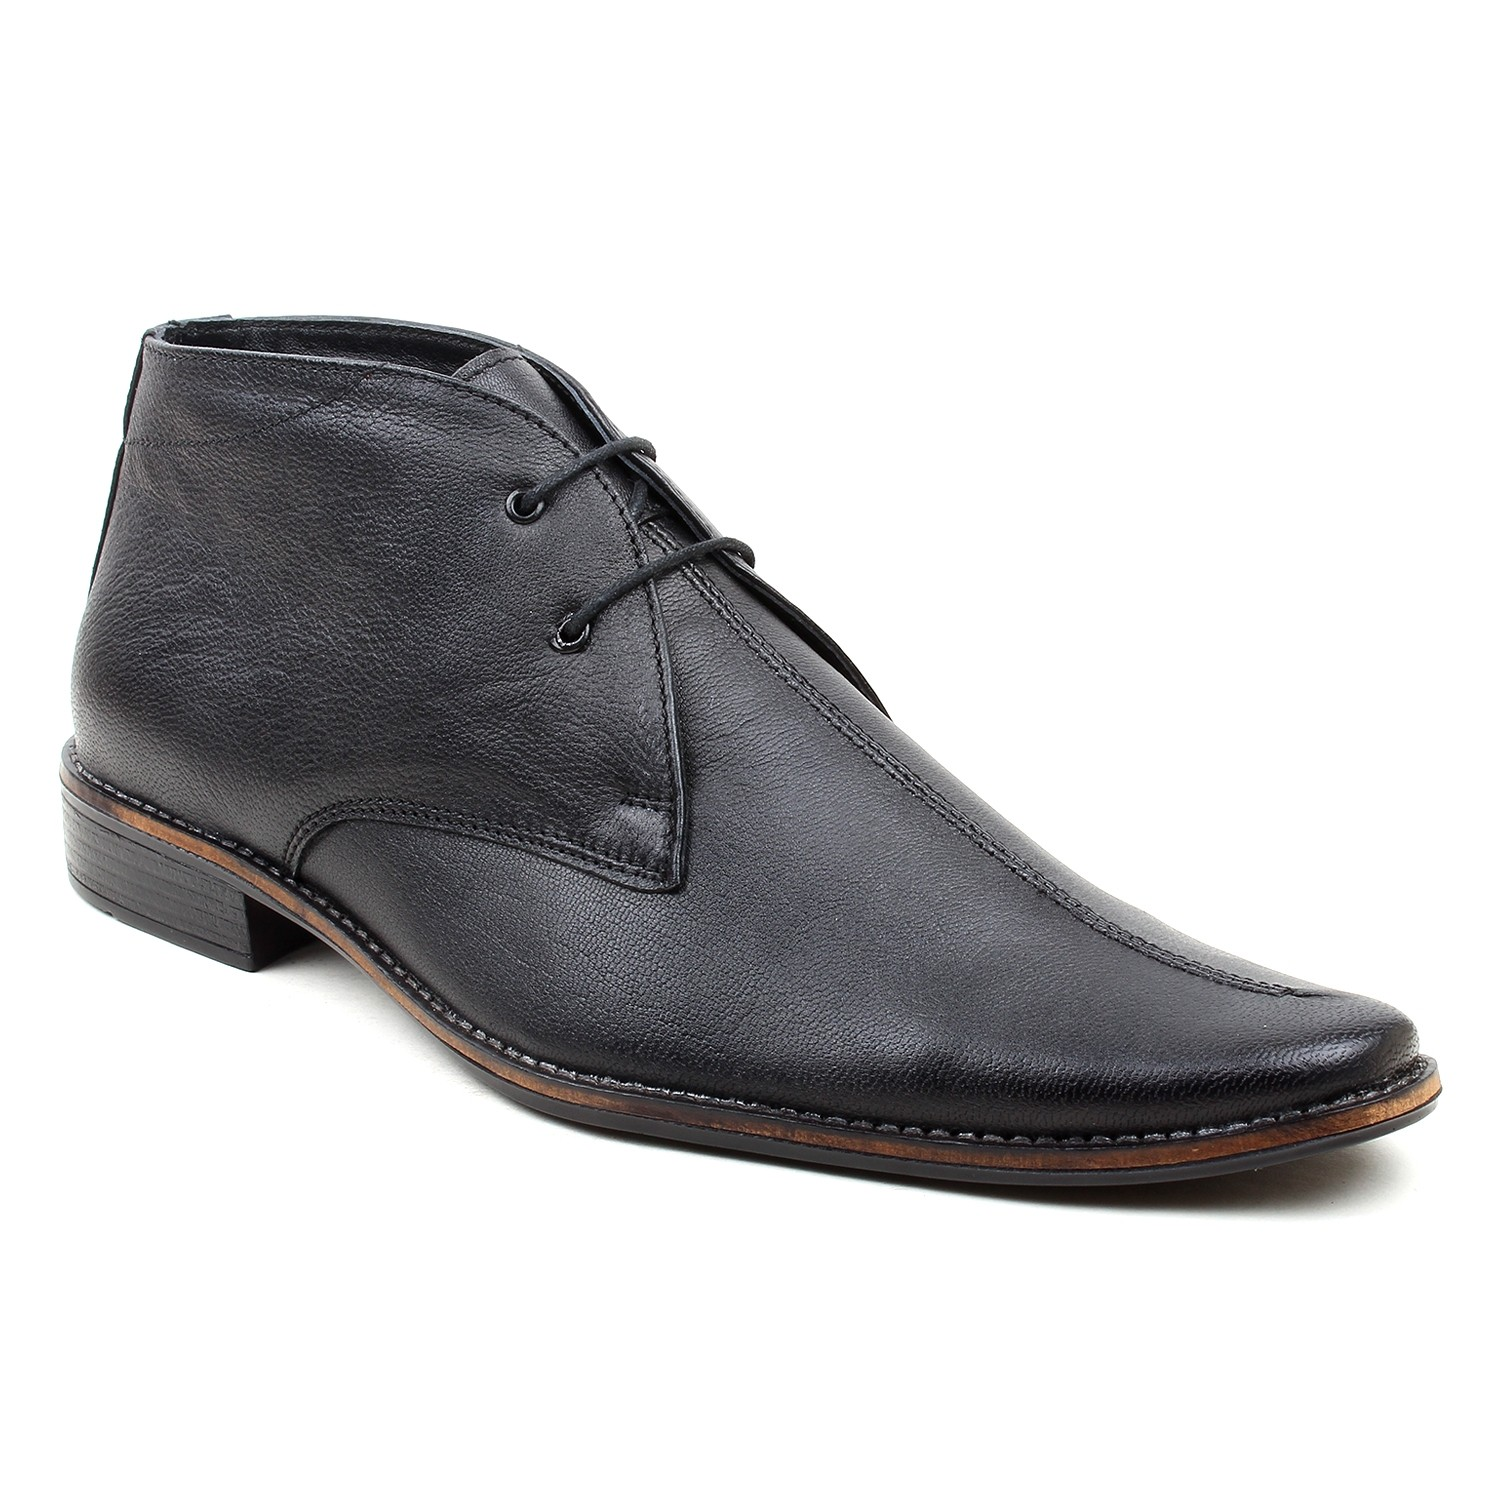 Leatherite Shoes Black